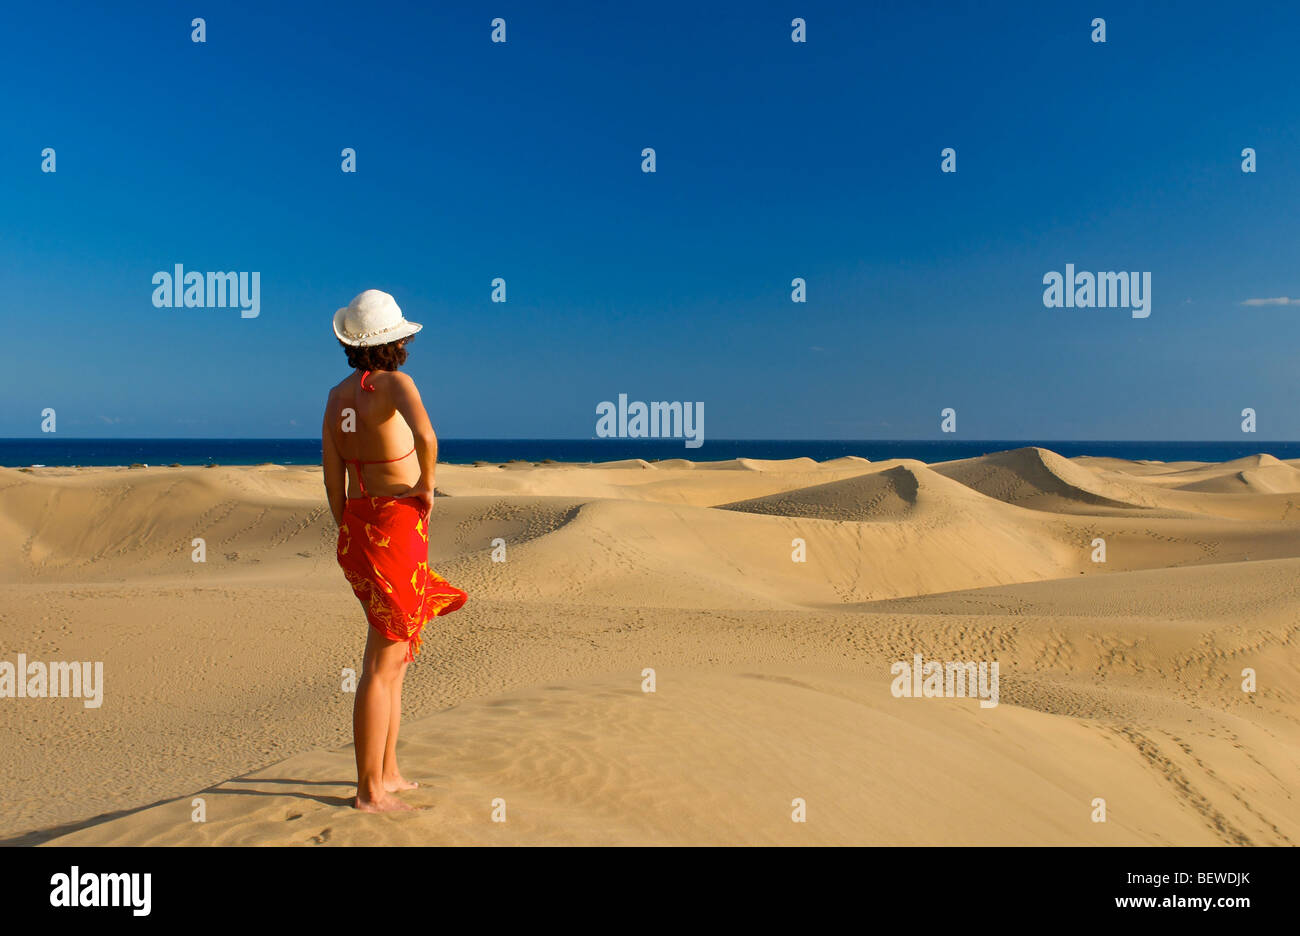 Woman standing on a sand dune looking at the sea, Maspalomas, Gran Canaria, Spain, rear view - Stock Image